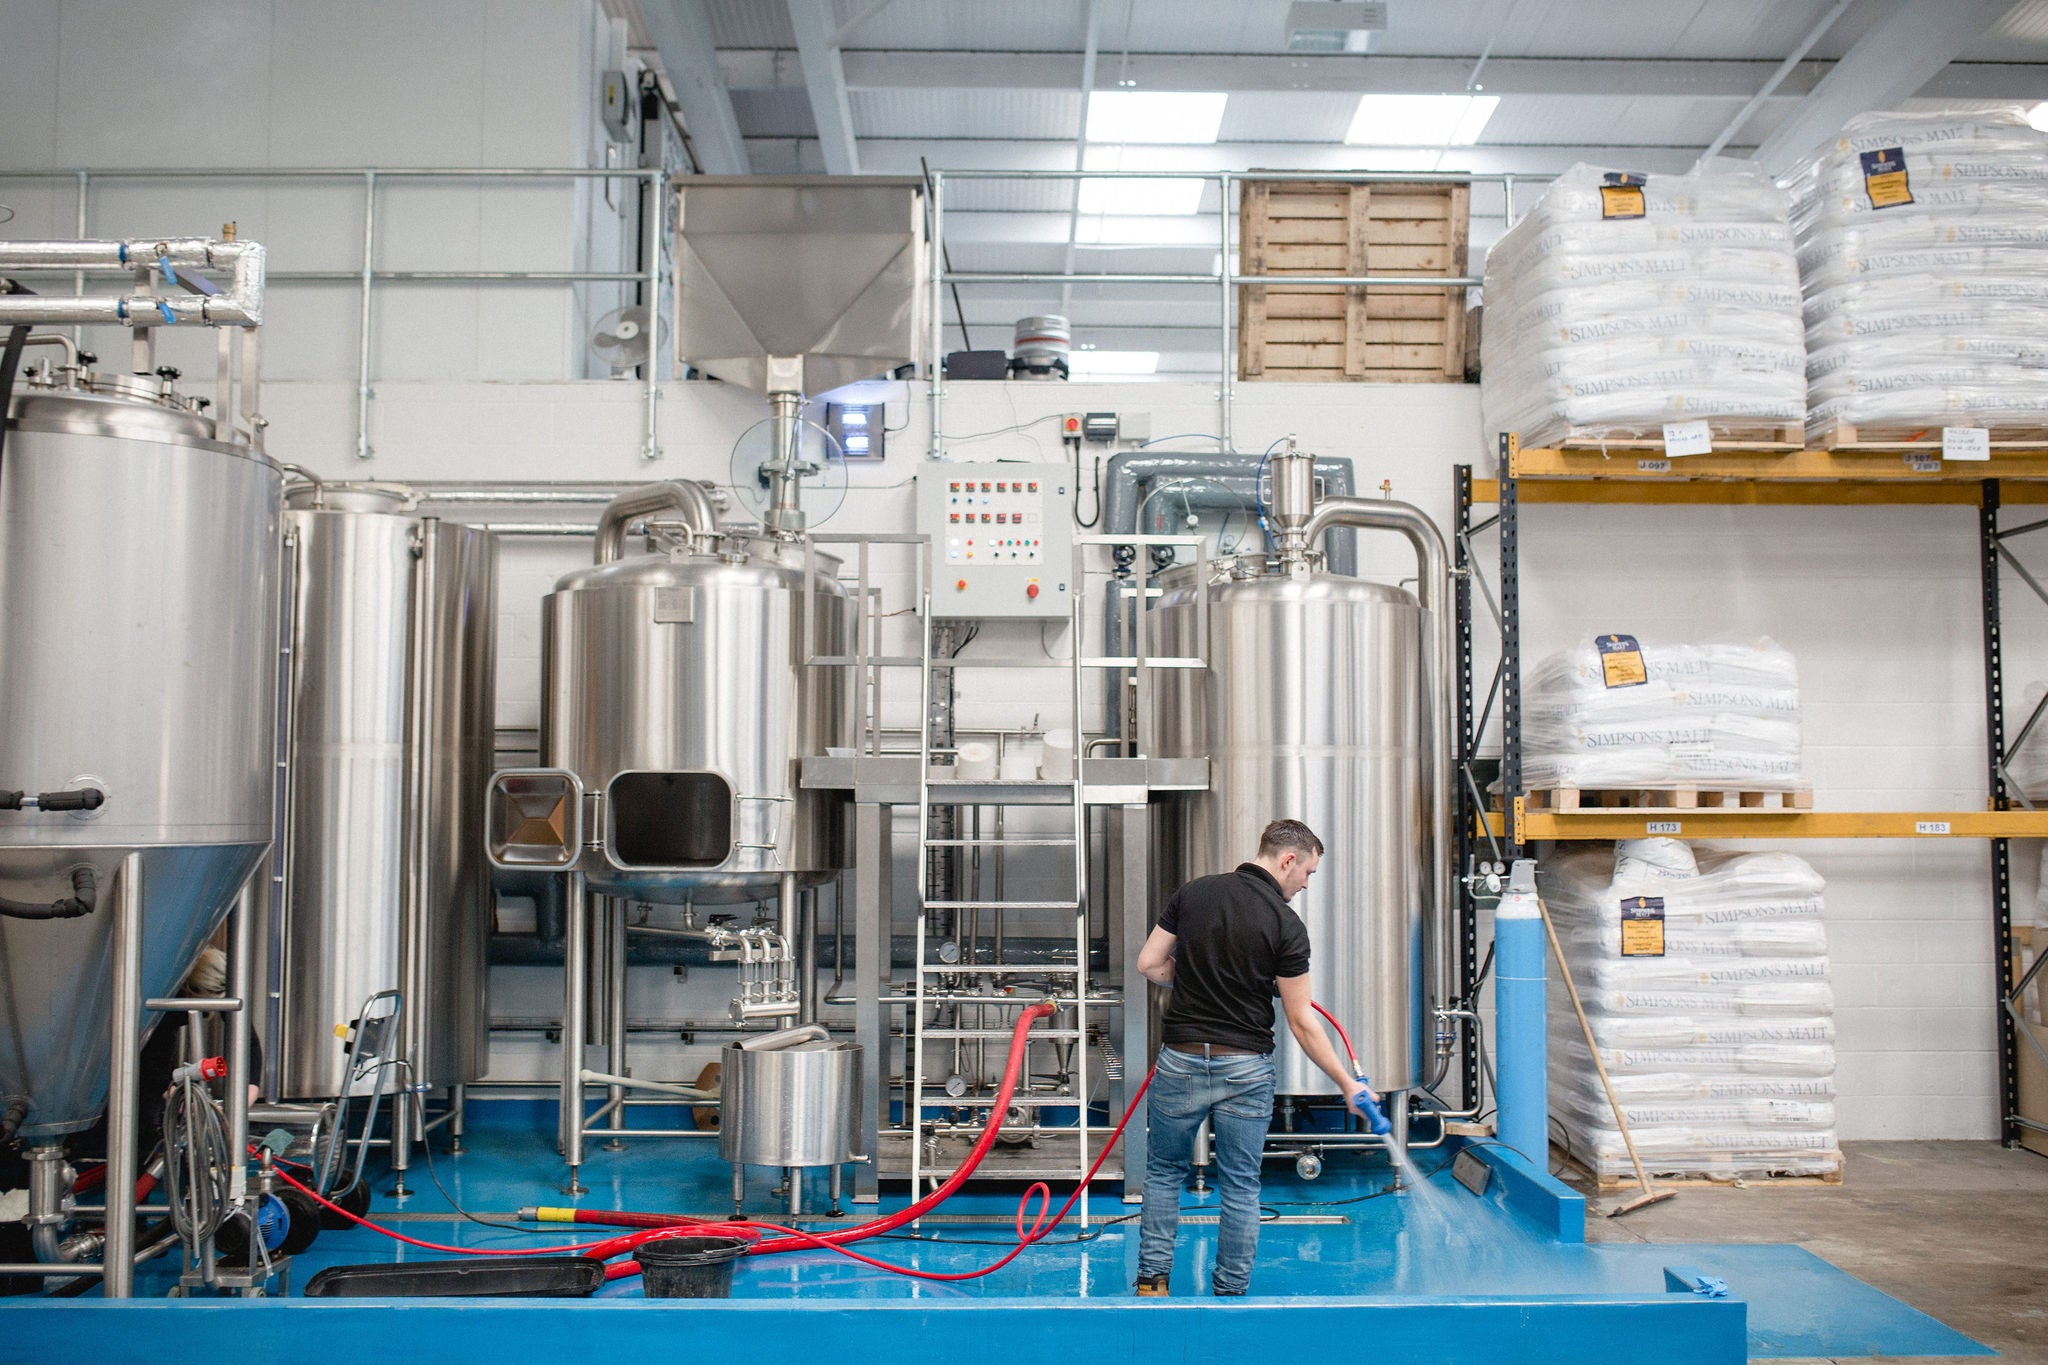 Cleaning the Harrogate brewery – home of Baby-Faced Assassin and Buckeye beer.